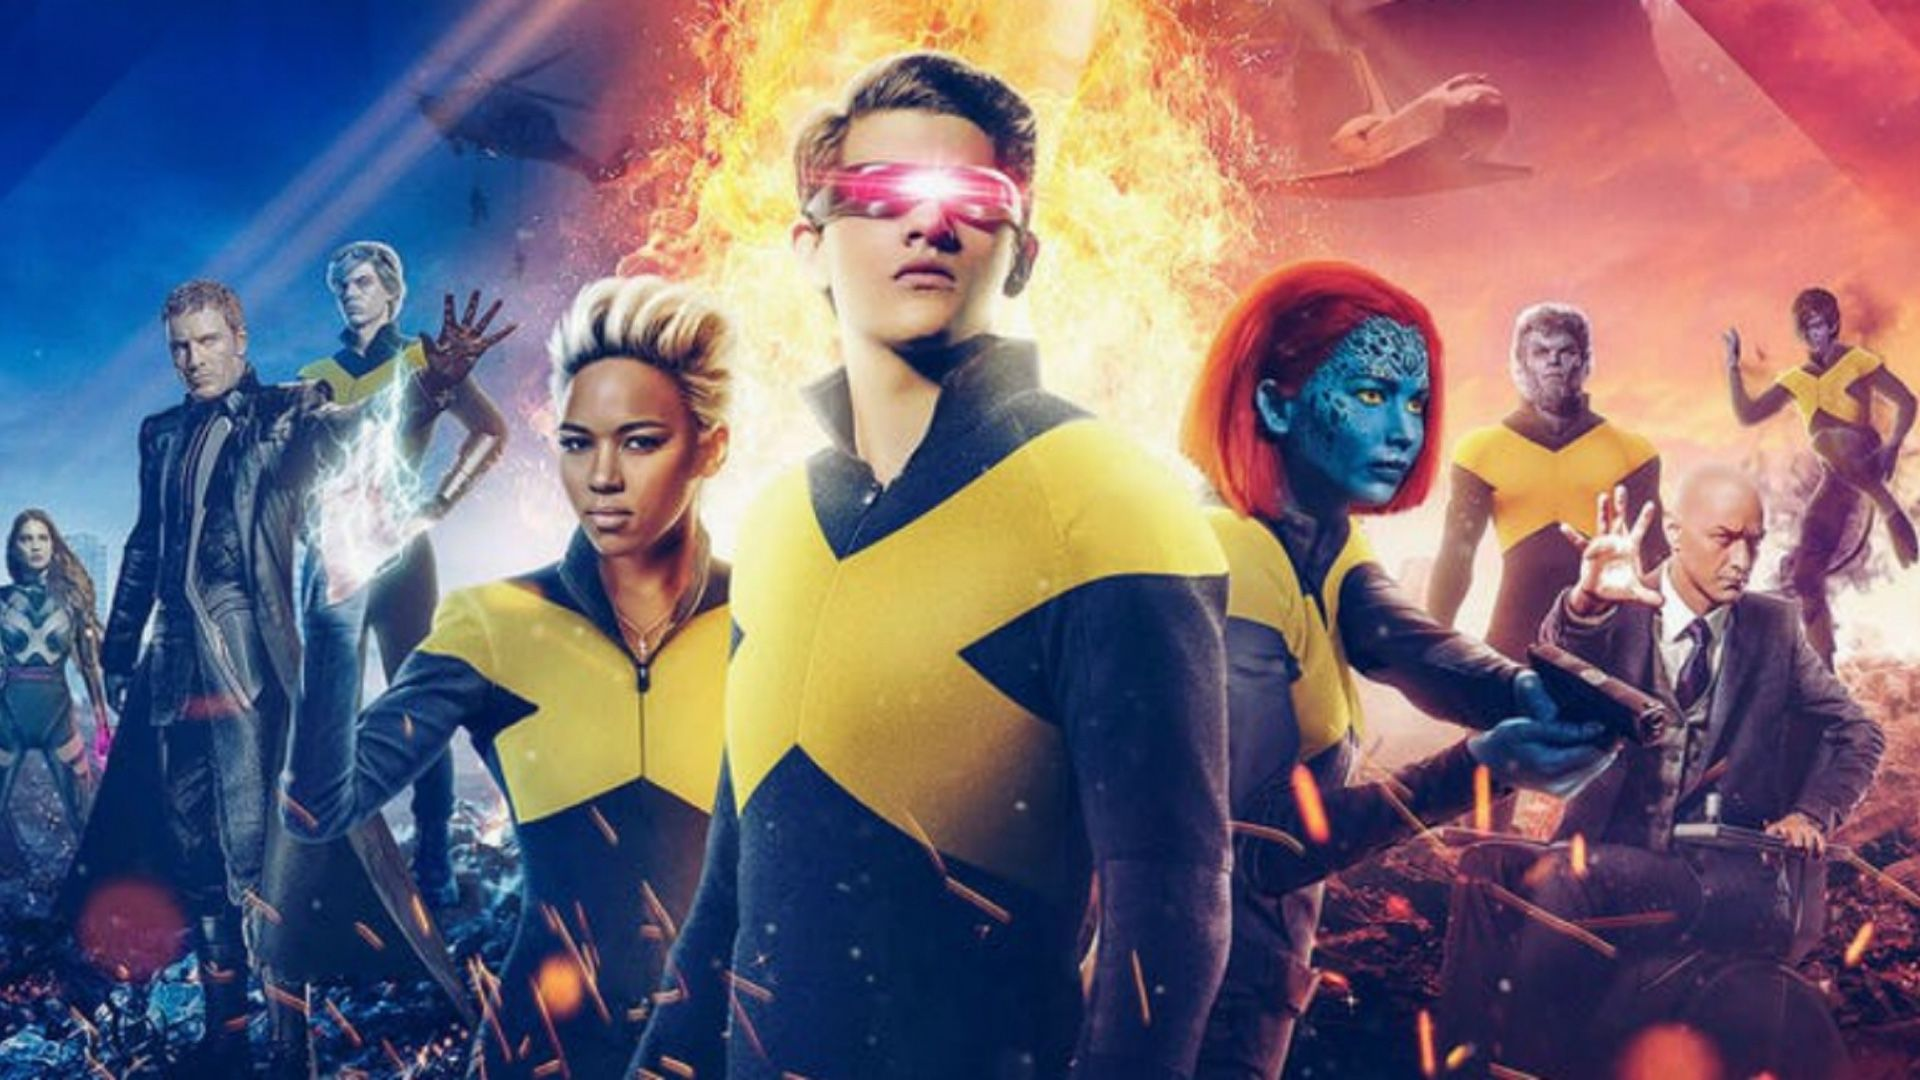 X Men Dark Phoenix Creative Team Want Us To Believe The Film Was Planned As The End Before Disney Bought Fox Geektyrant Dark Phoenix X Men The New Mutants